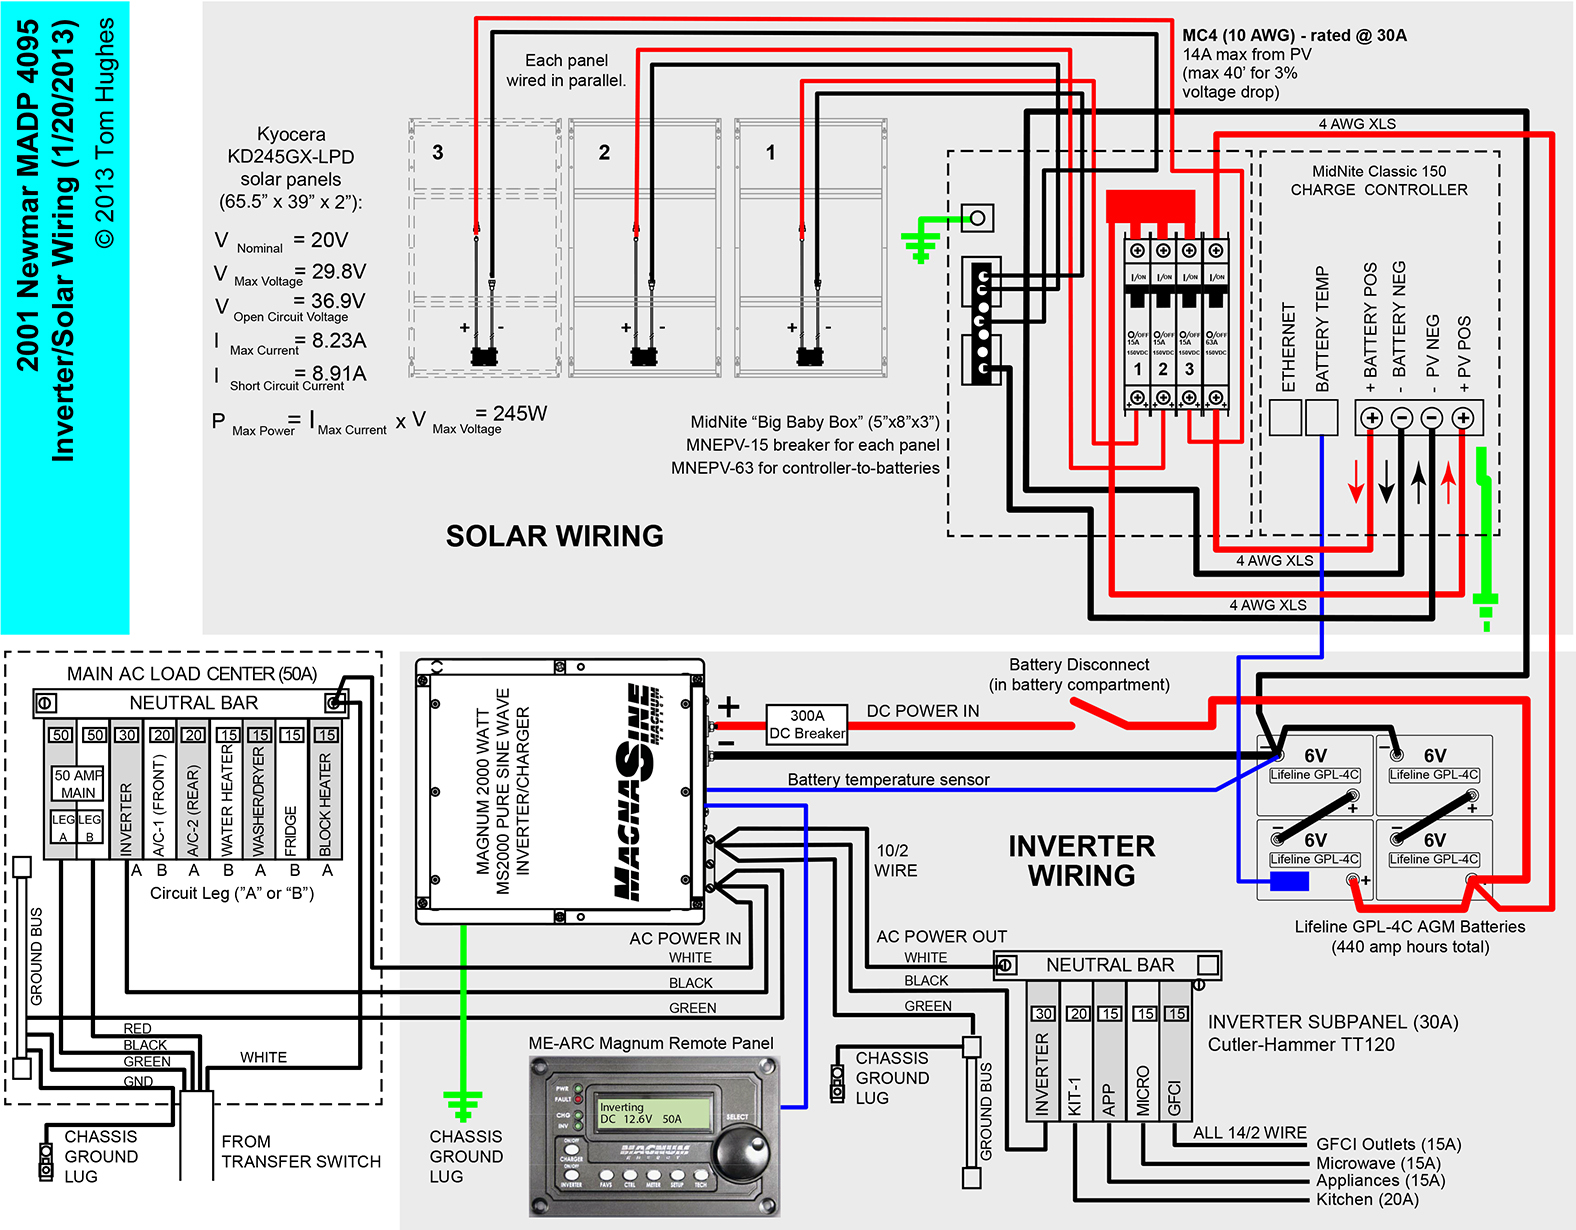 ms2000_newmar_inverter_wiring_01_20_2013 rv inverter diagram rv inverter transfer switch \u2022 wiring diagrams rv inverter wiring diagram at crackthecode.co